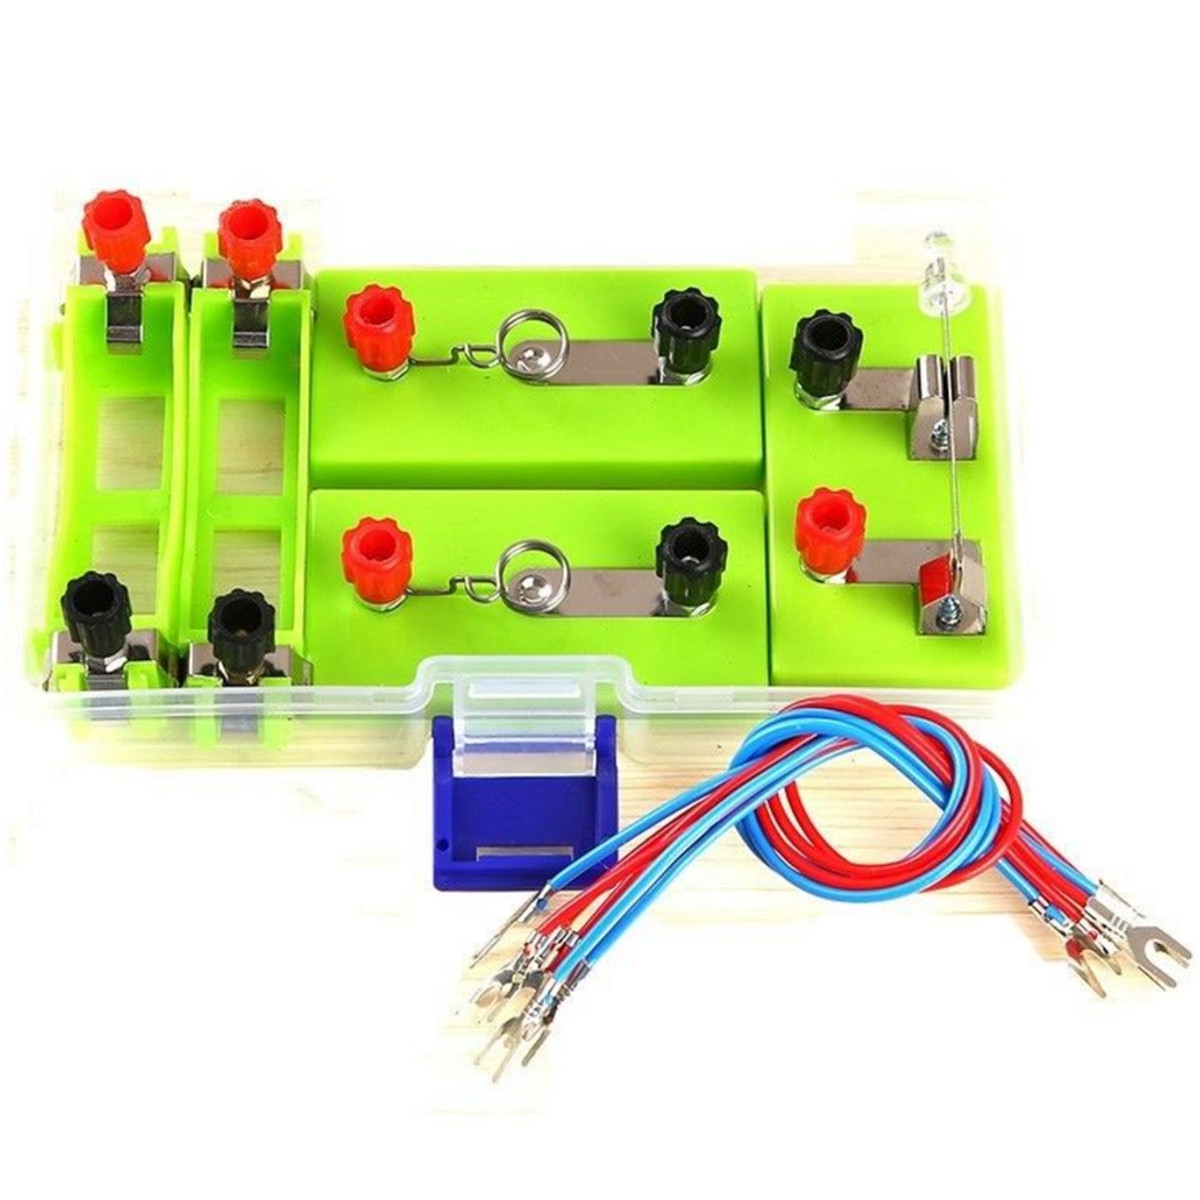 Electric Electricity Kit Kids Build Own Circuit Board Student School Components Best Toddler Toys Science Toy